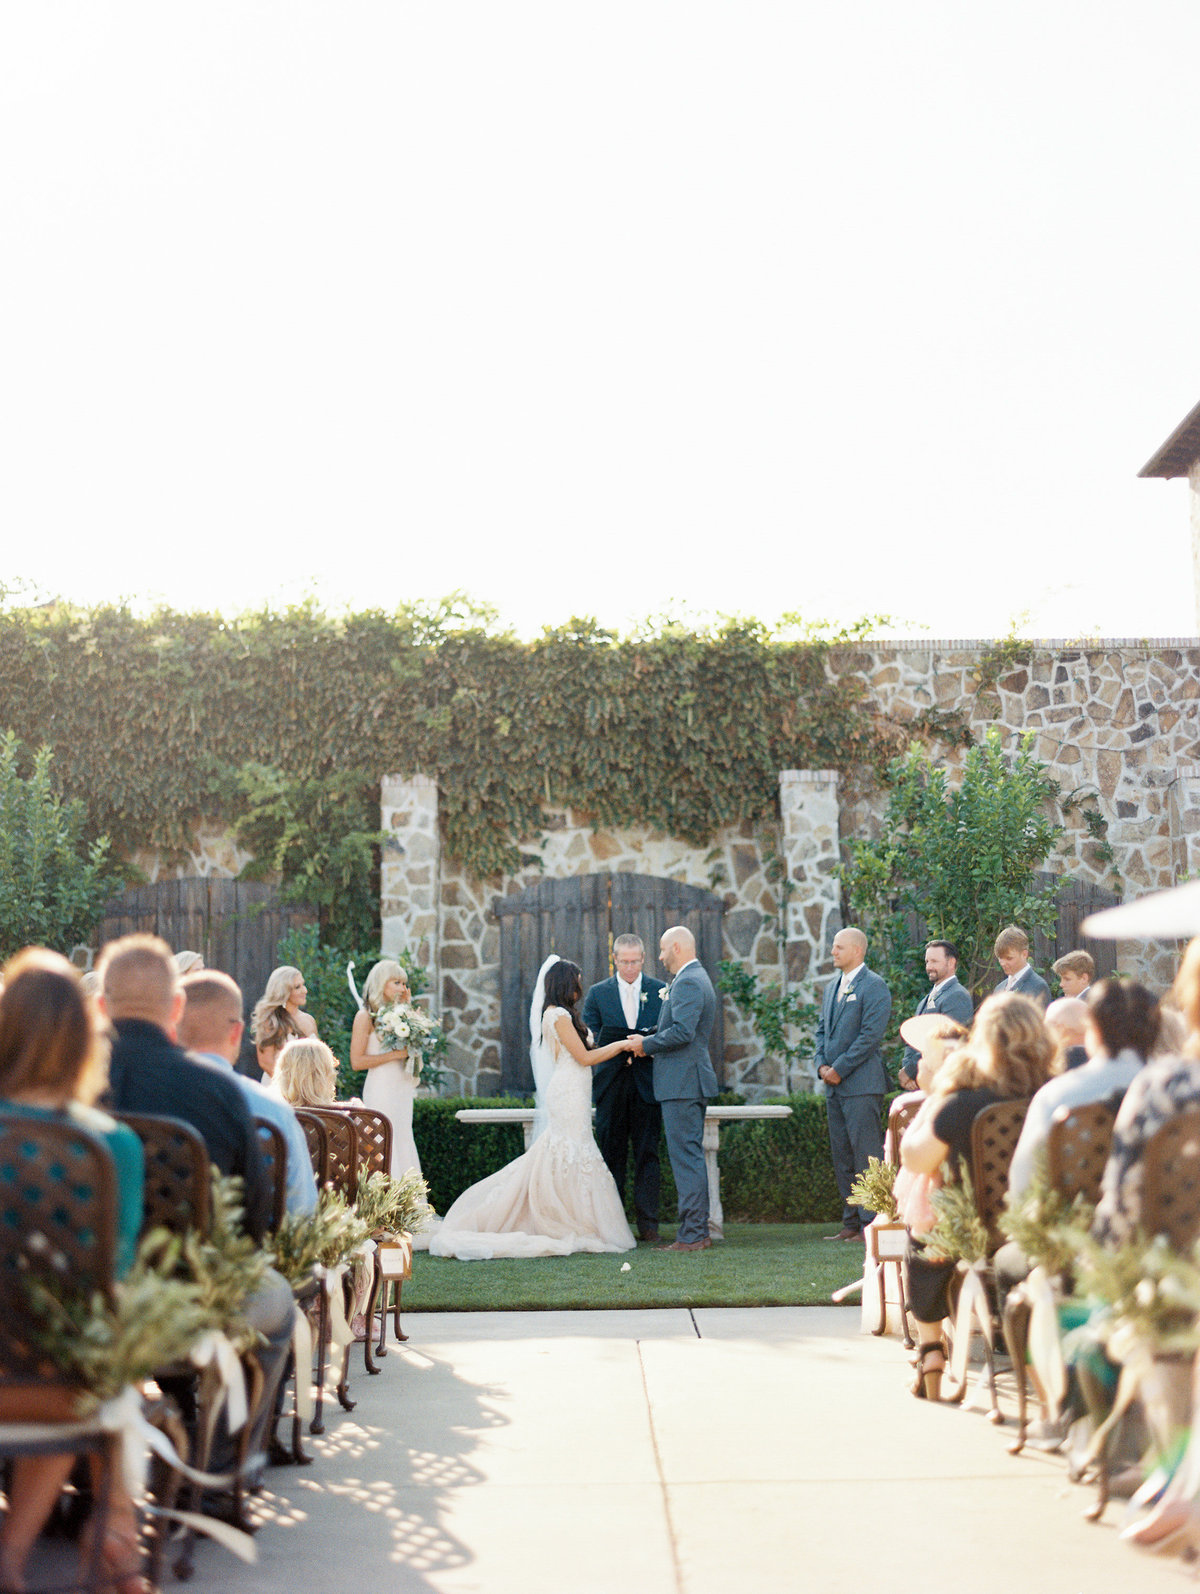 Natalie Bray Studios, Natalie Bray Photography, Southern California Wedding Photographer, Fine Art wedding, Destination Wedding Photographer, Sonoma Wedding Photographer-26